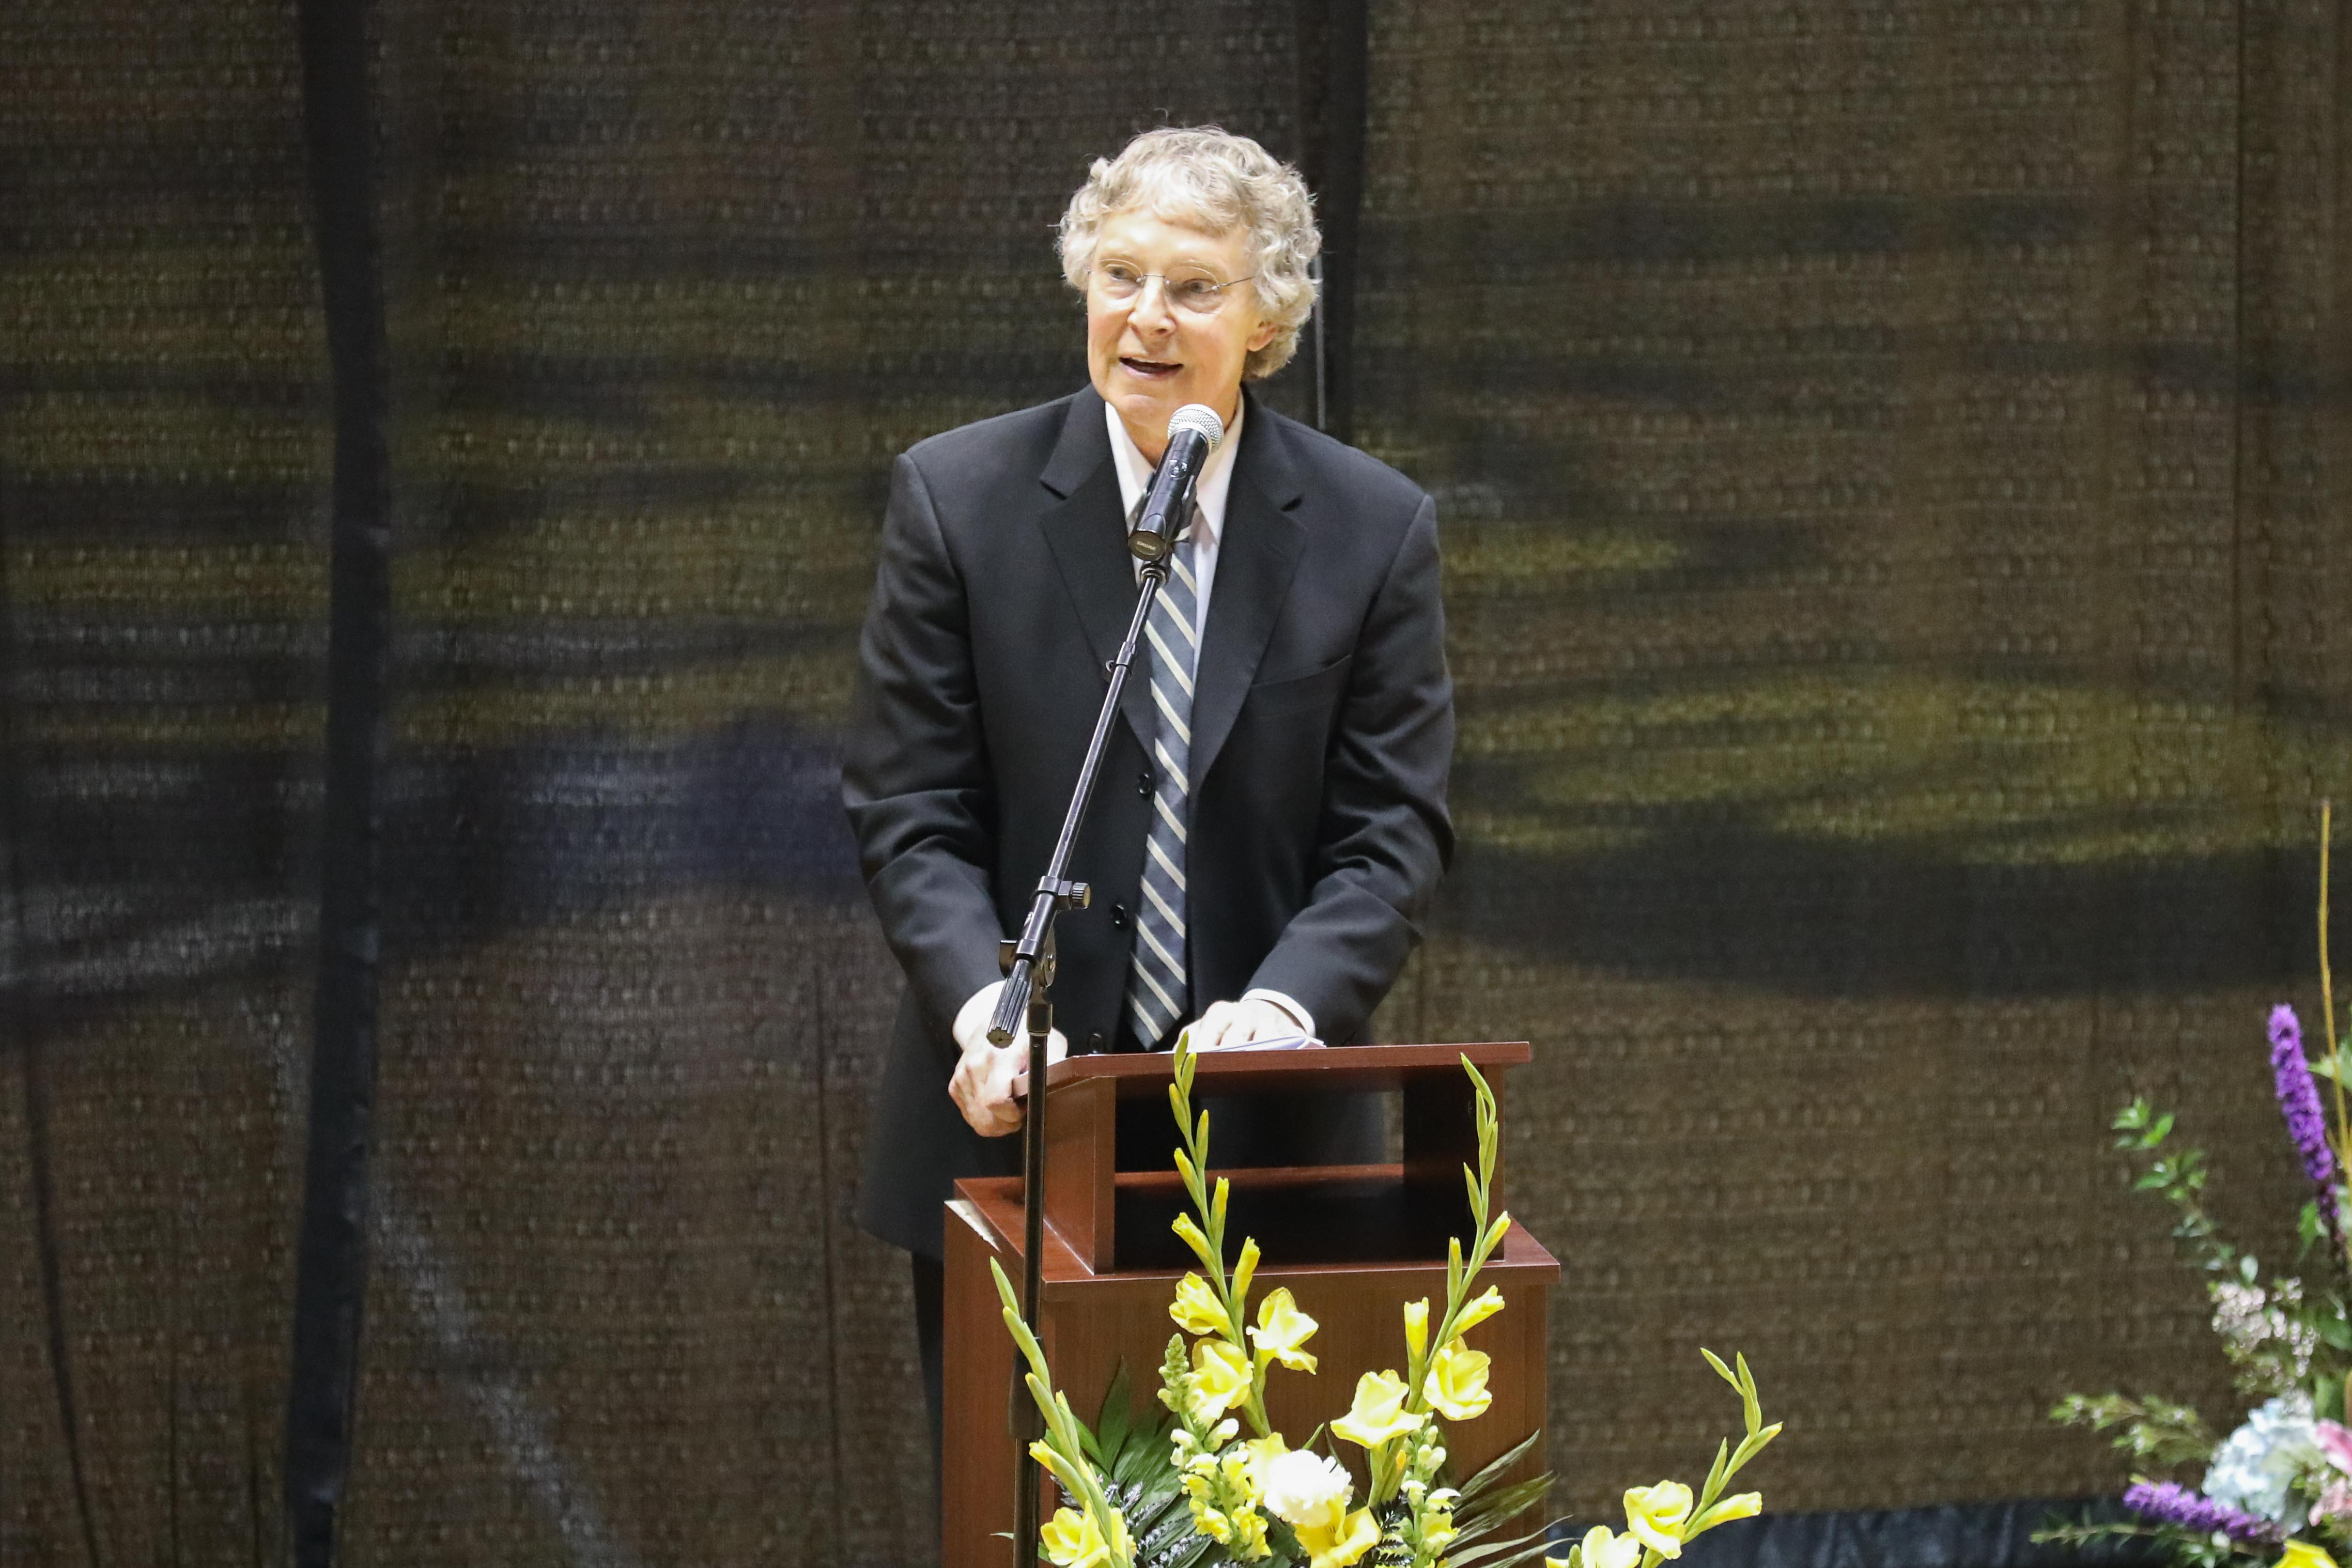 Wichita State broadcaster Dave Dahl eulogizes the late Linwood Sexton at a memorial service Saturday in Charles Koch Arena. (Apr. 8, 2017)